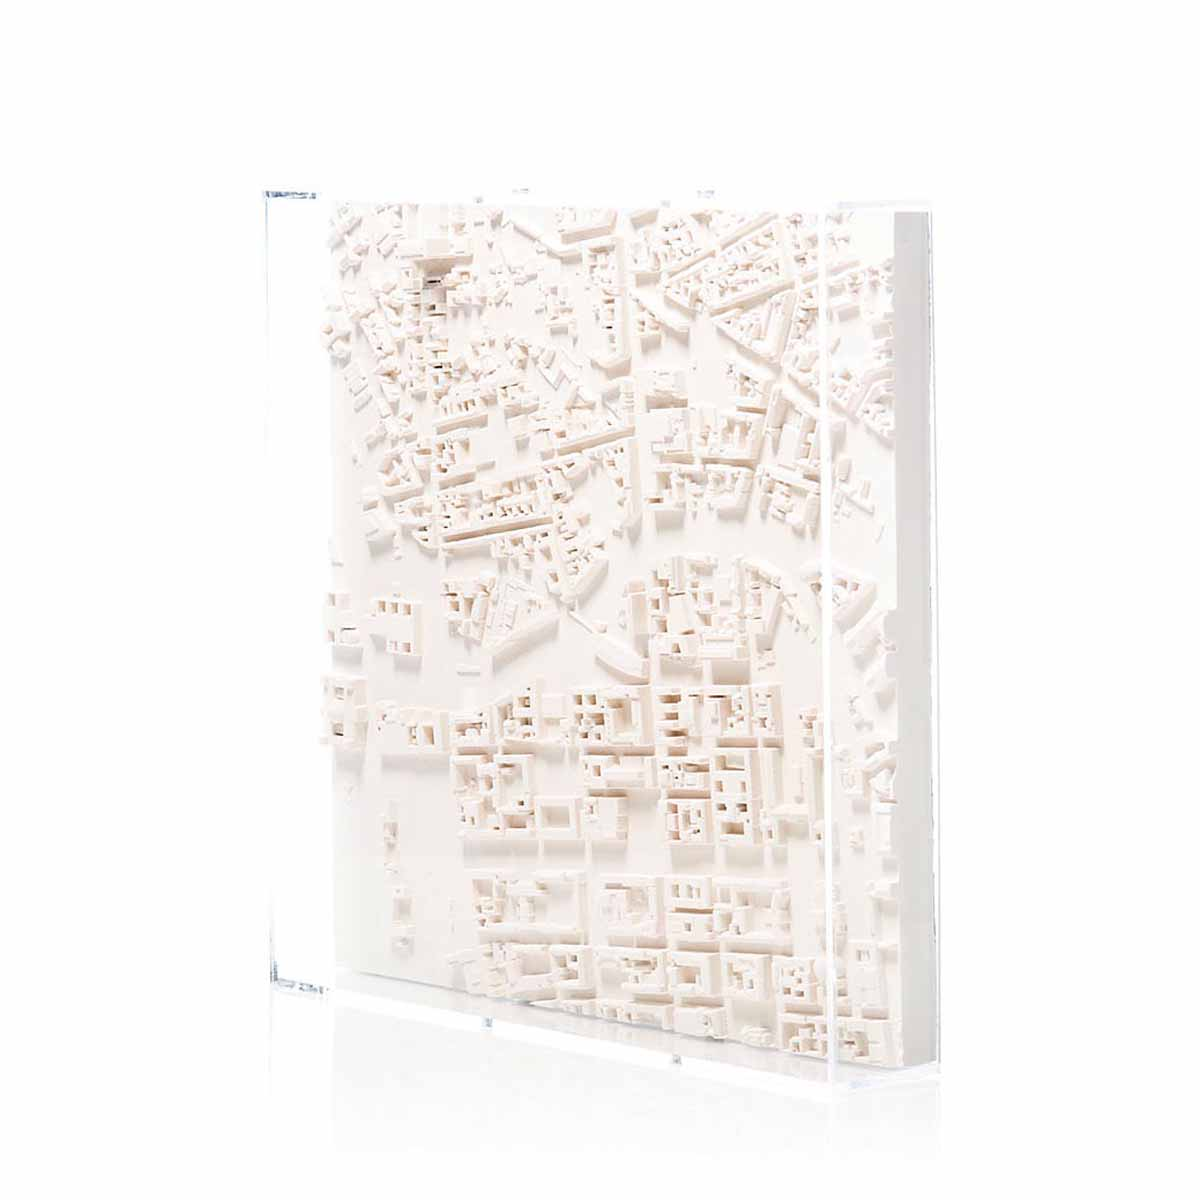 Berlin Cityscape Architectural Model